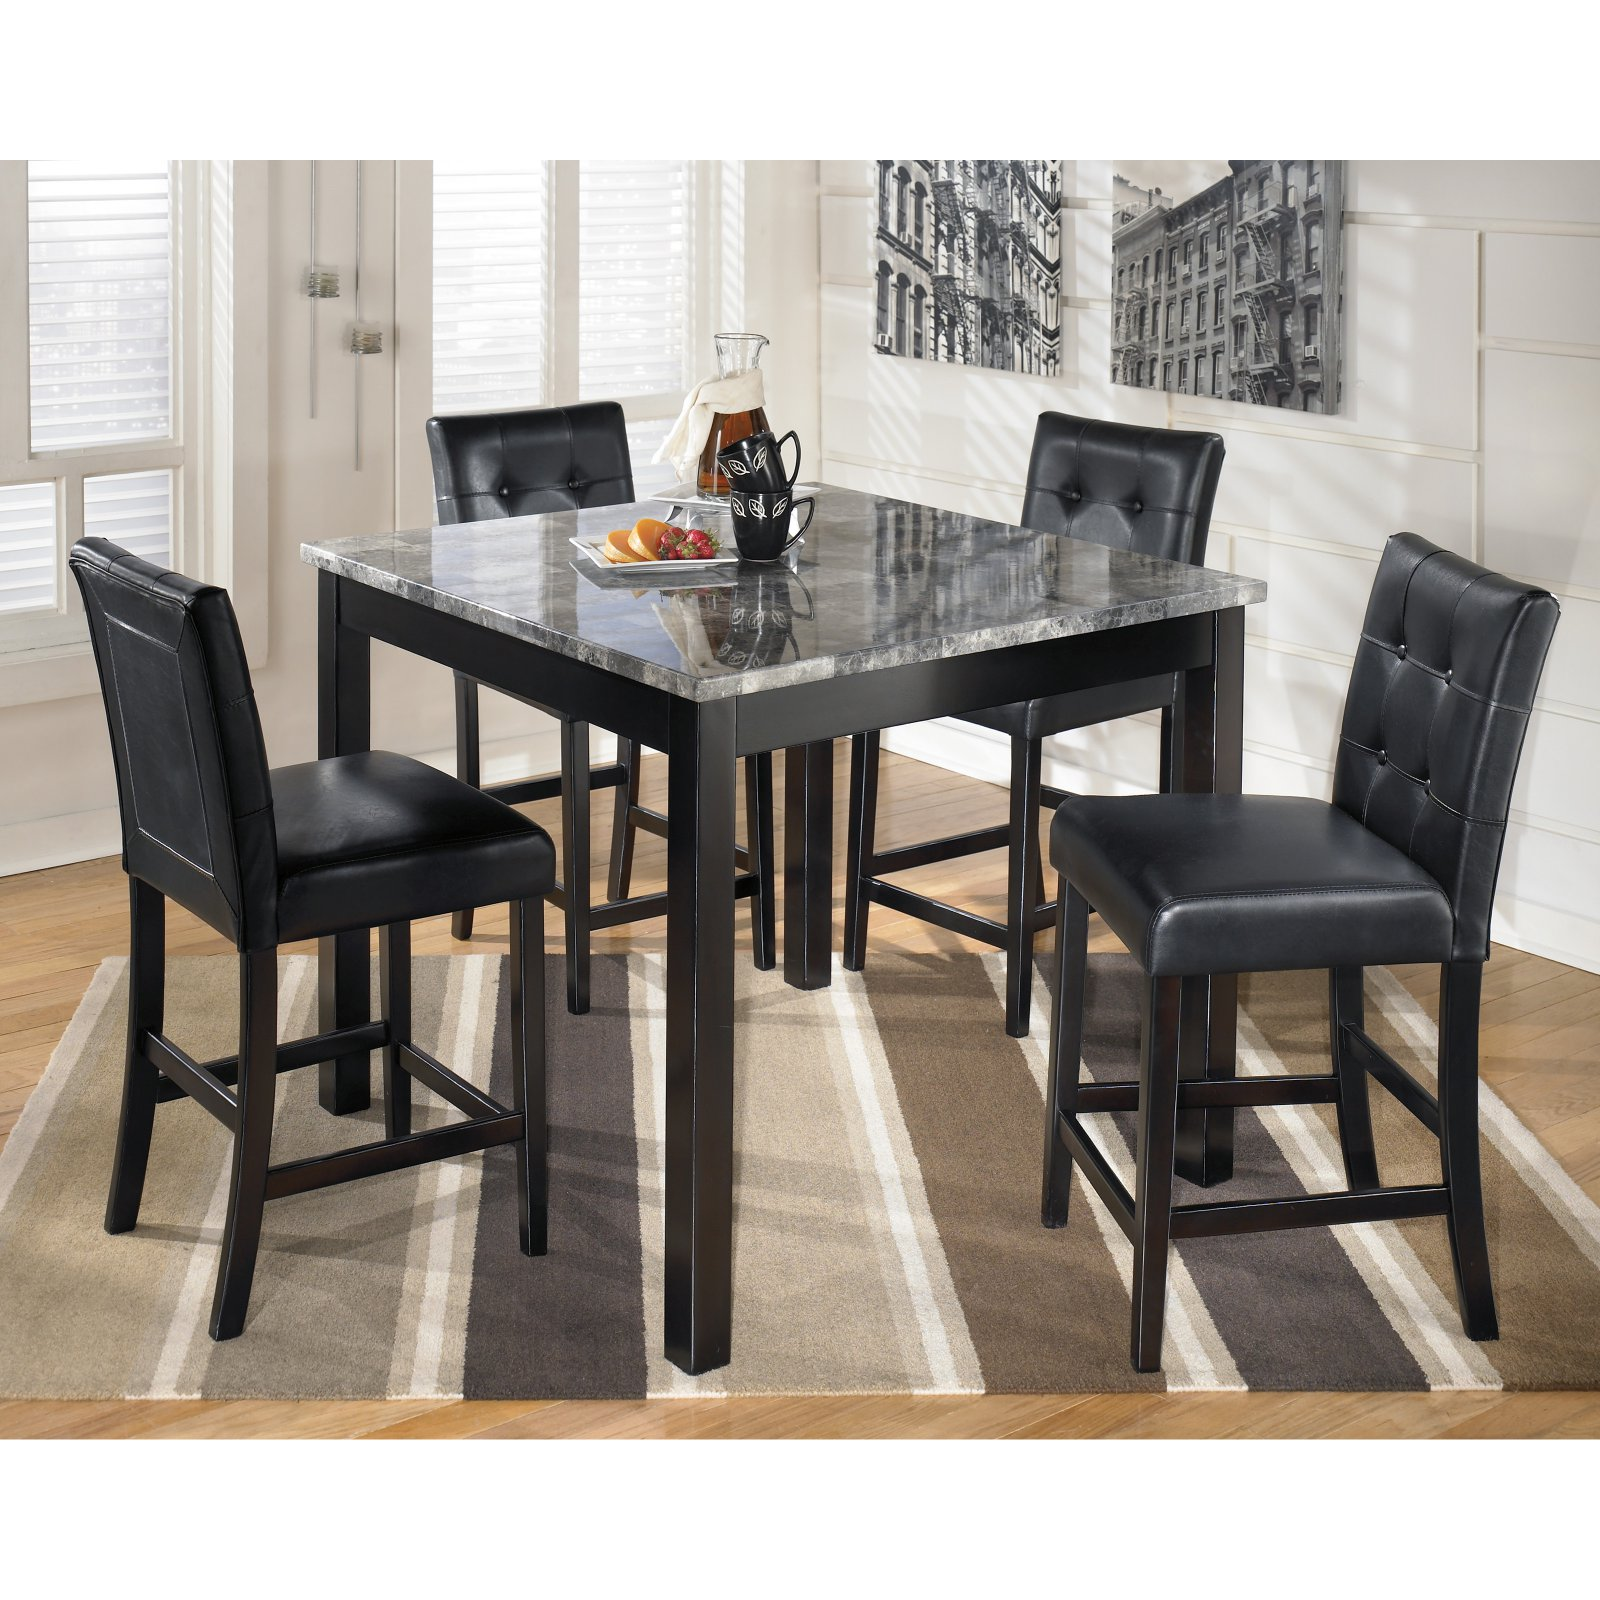 Signature Design By Ashley Maysville 5 Piece Counter Height Dining Table Set